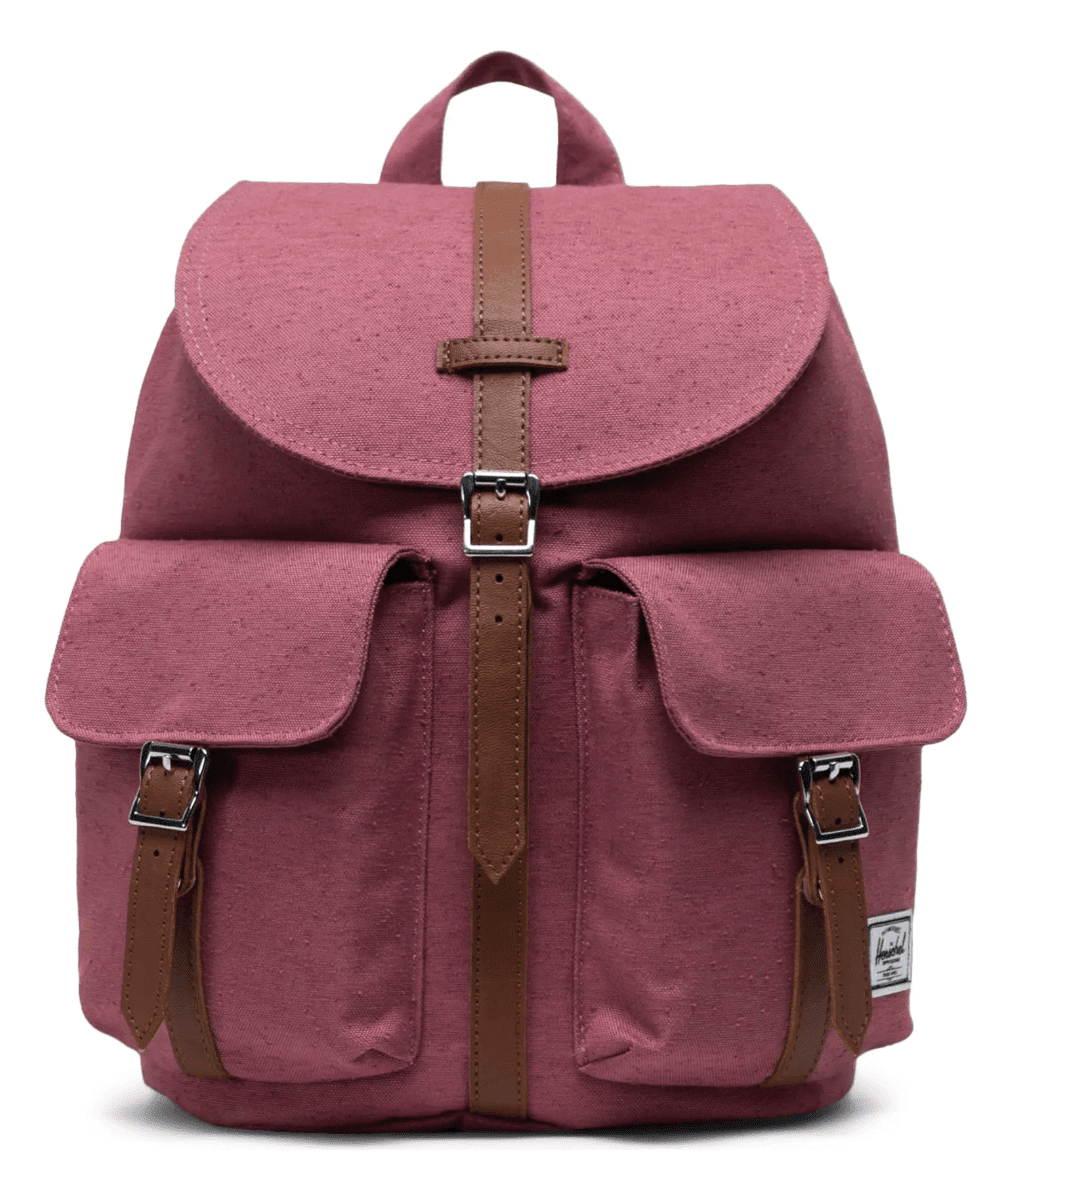 Hershel X-small Dawson Backpack